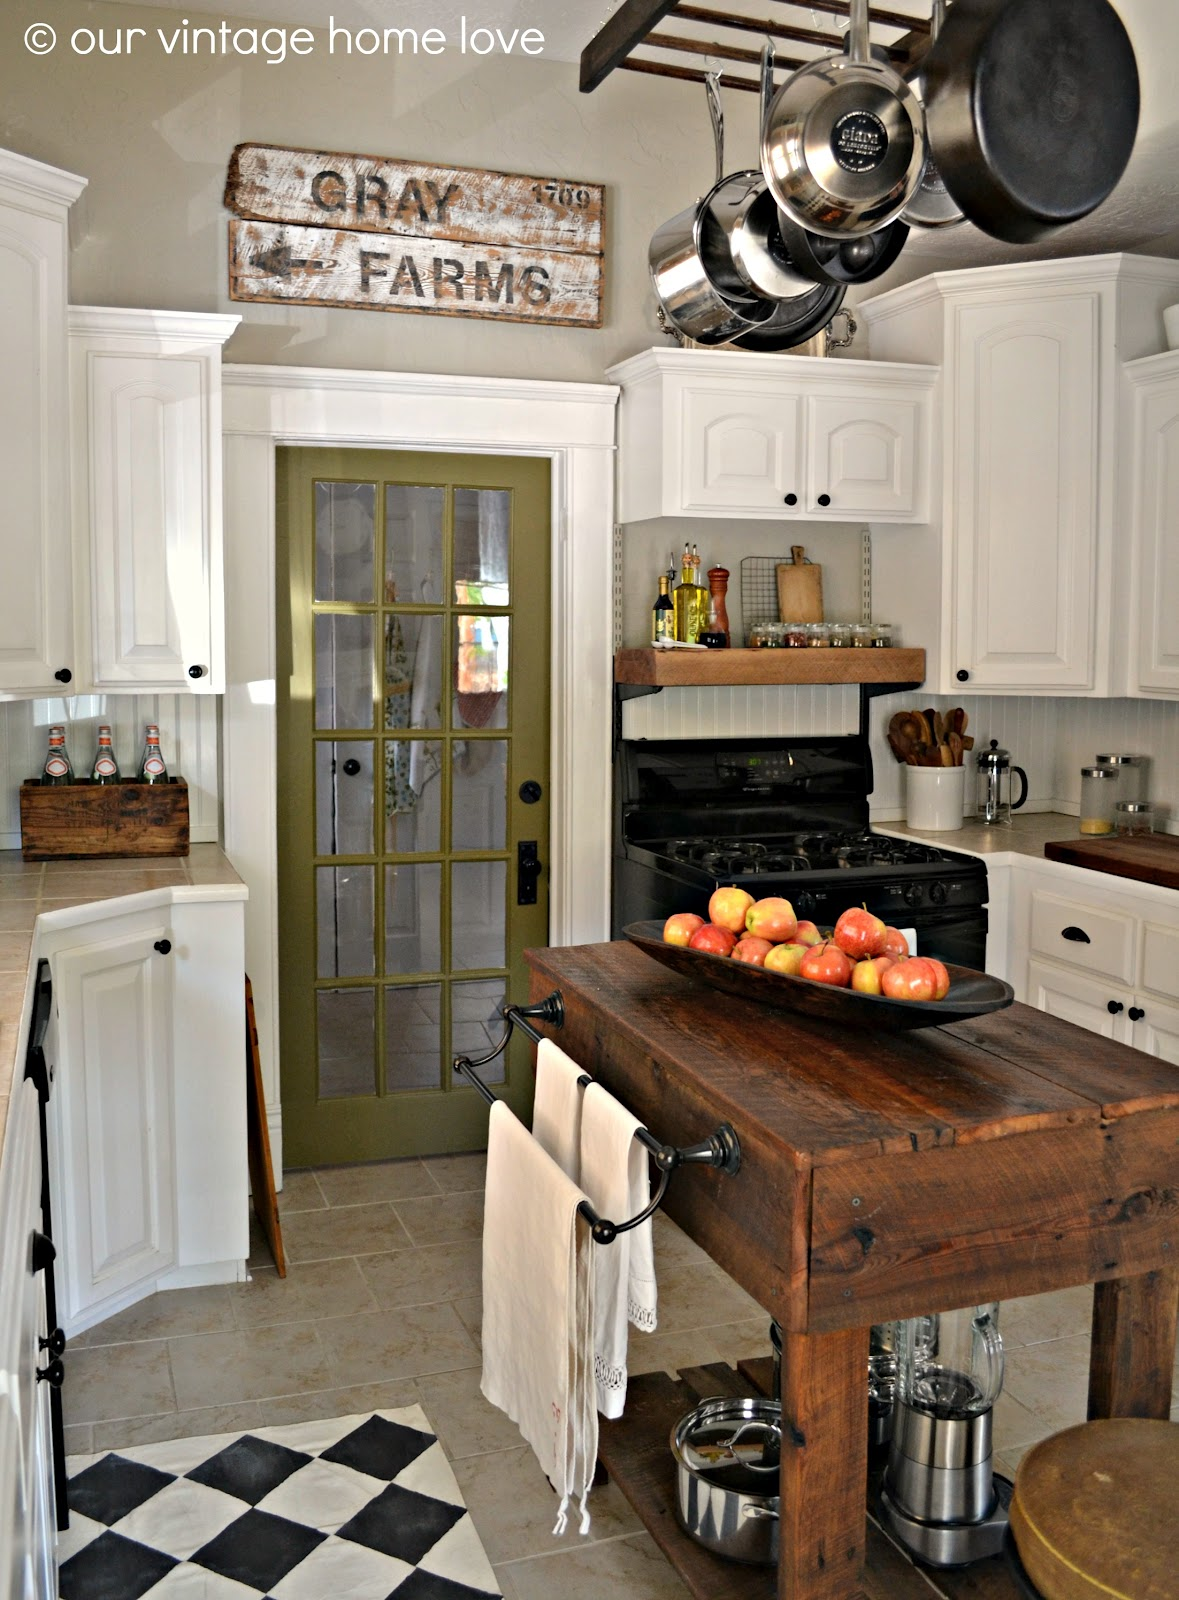 Vintage Kitchen Ideas: 23 Best Rustic Country Kitchen Design Ideas And